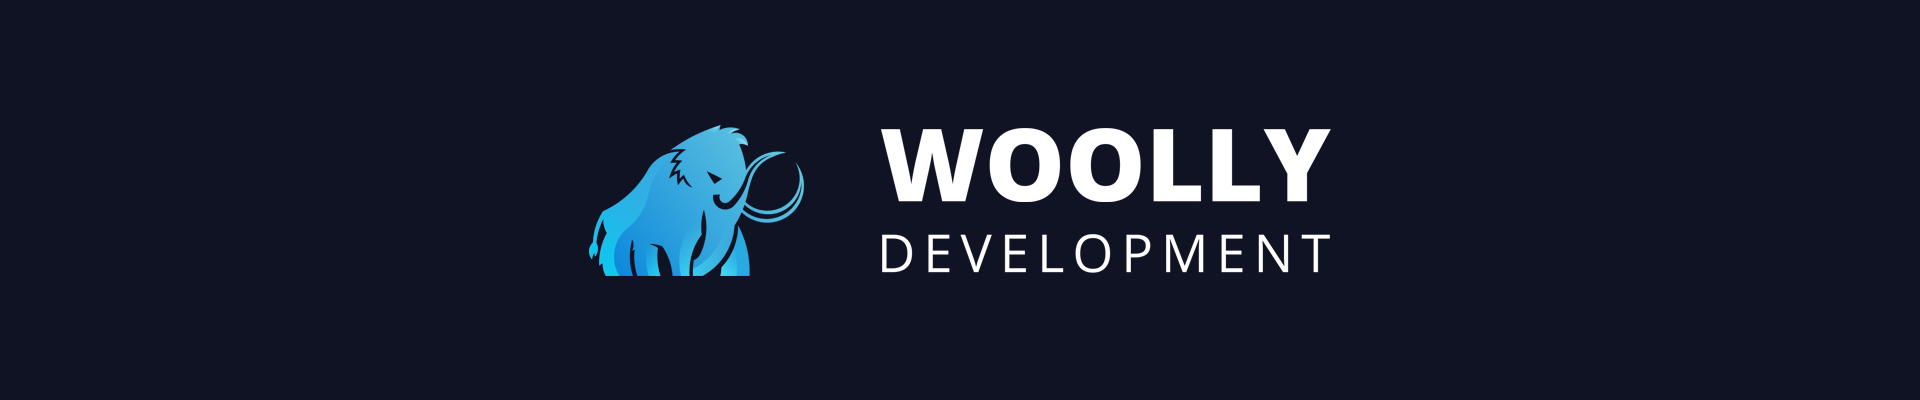 Woolly Development